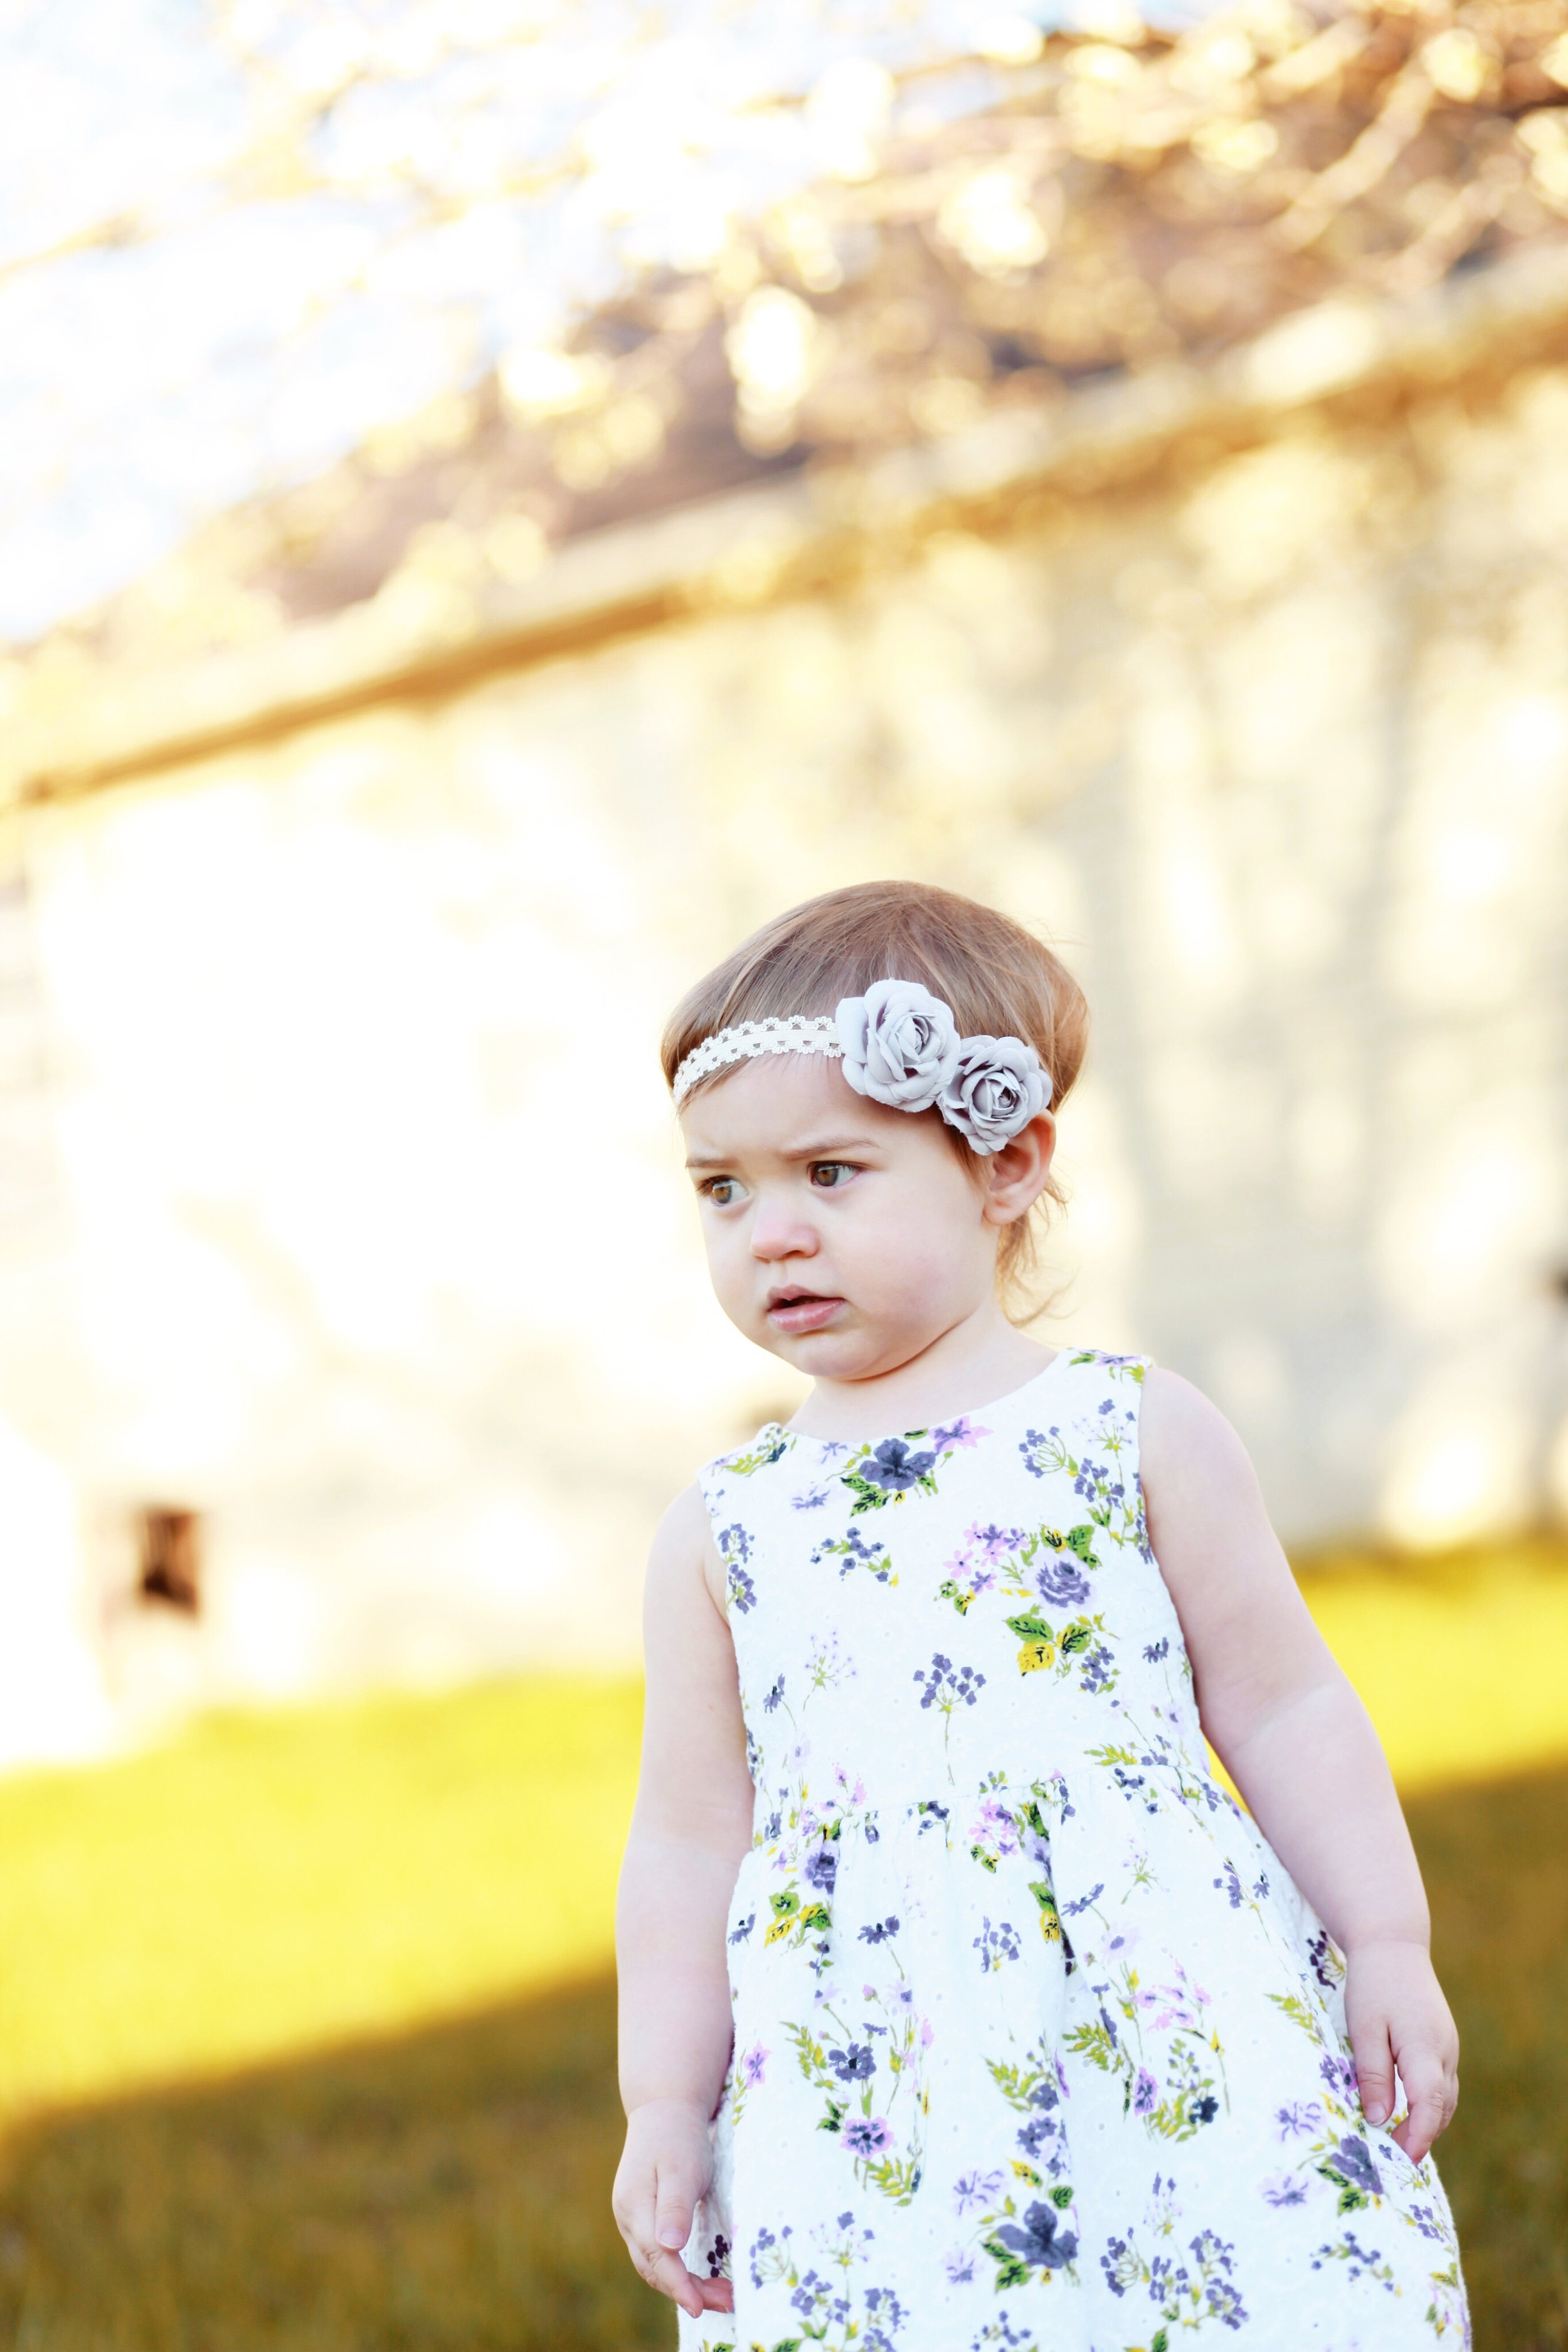 Iris 18 Months and How-To Capture Beautiful Easter Photos of Your Toddler